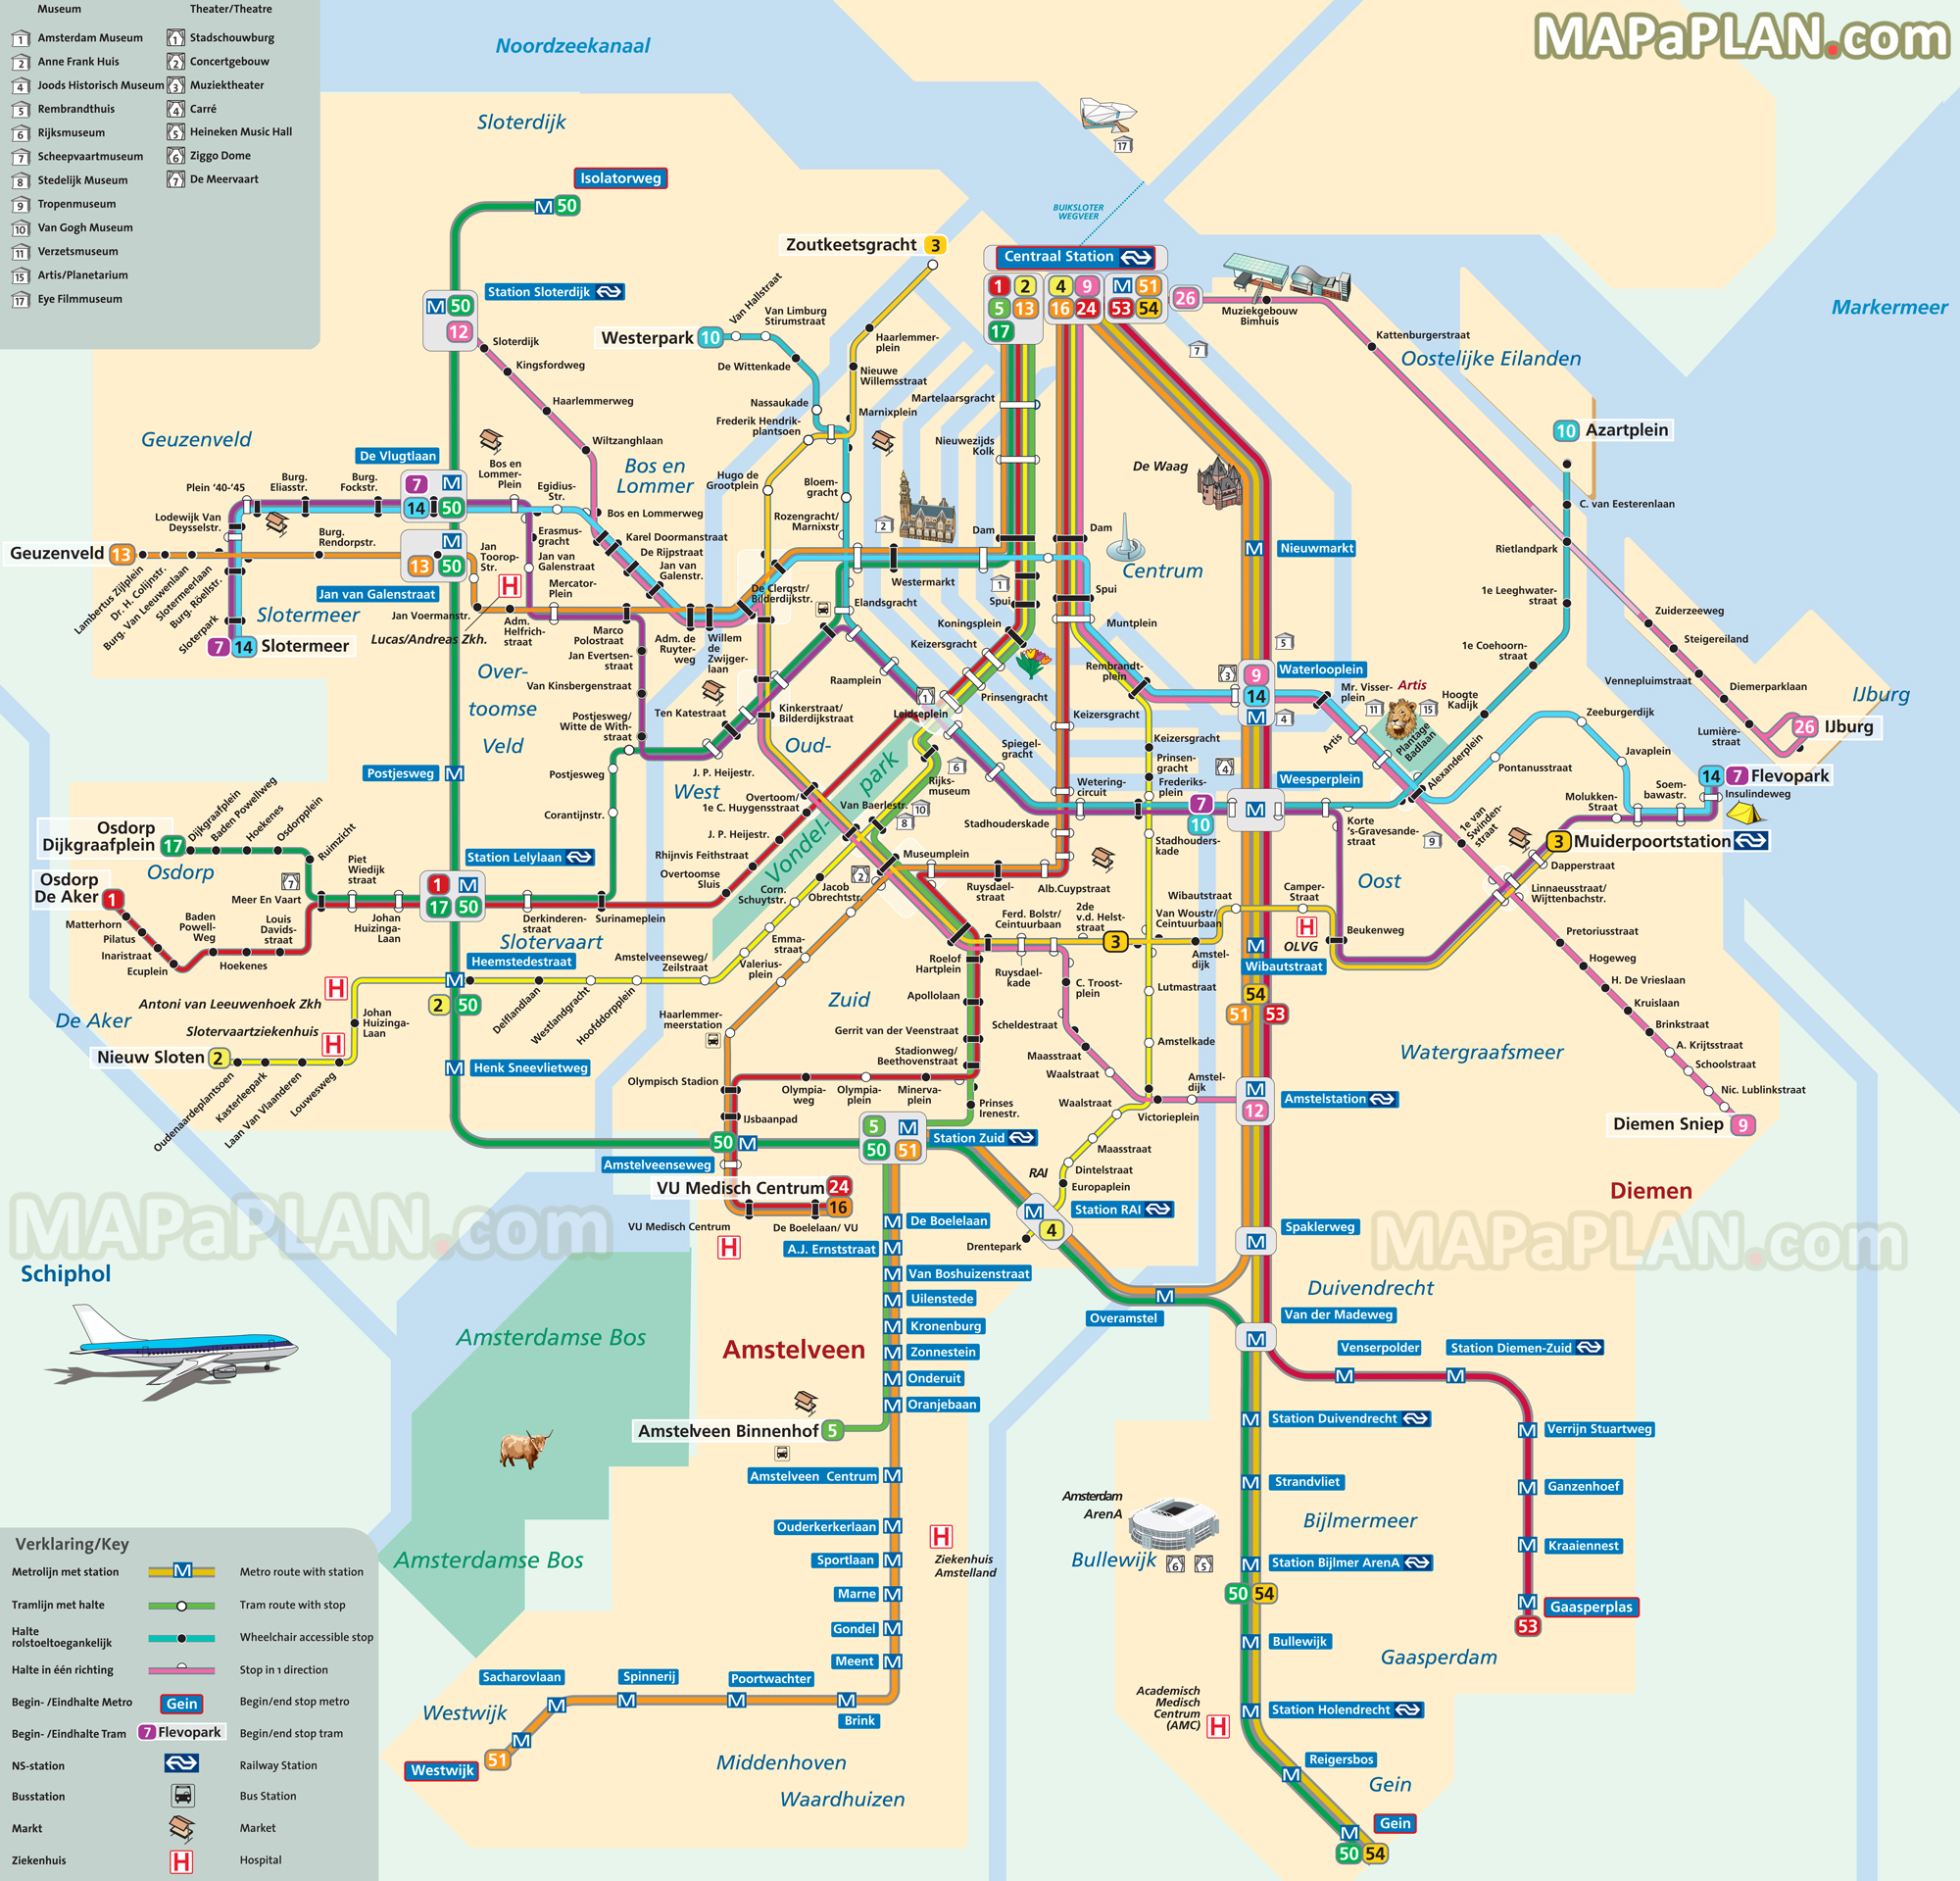 amsterdam tourist attractions map pdf with Tips For Visiting Amsterdam on TfLSillyMaps together with Carte Touristique Amsterdam together with Tips For Visiting Amsterdam also Trento Tourist Map together with Verona Tourist Attractions Map.